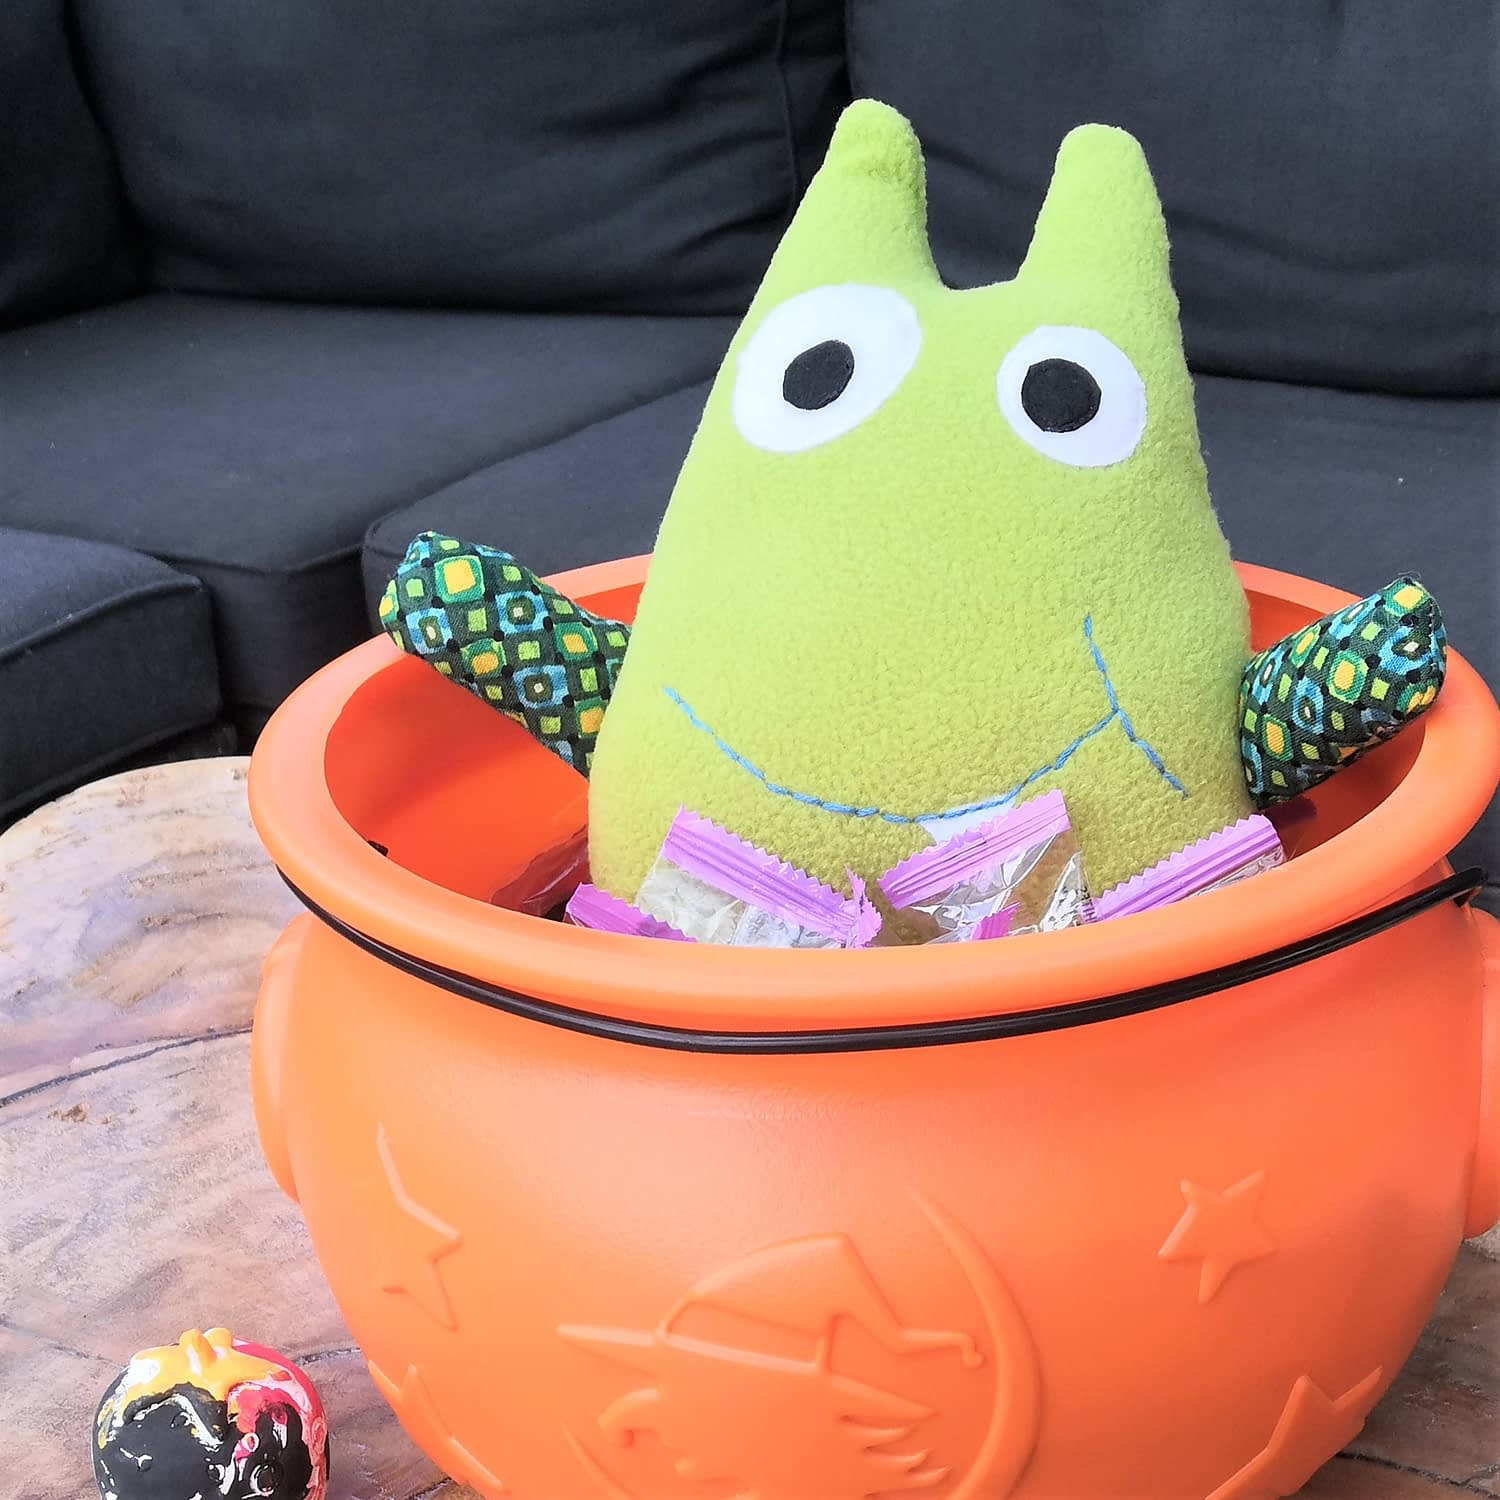 Made with SewToy cute monster animal pattern for beginners sewing